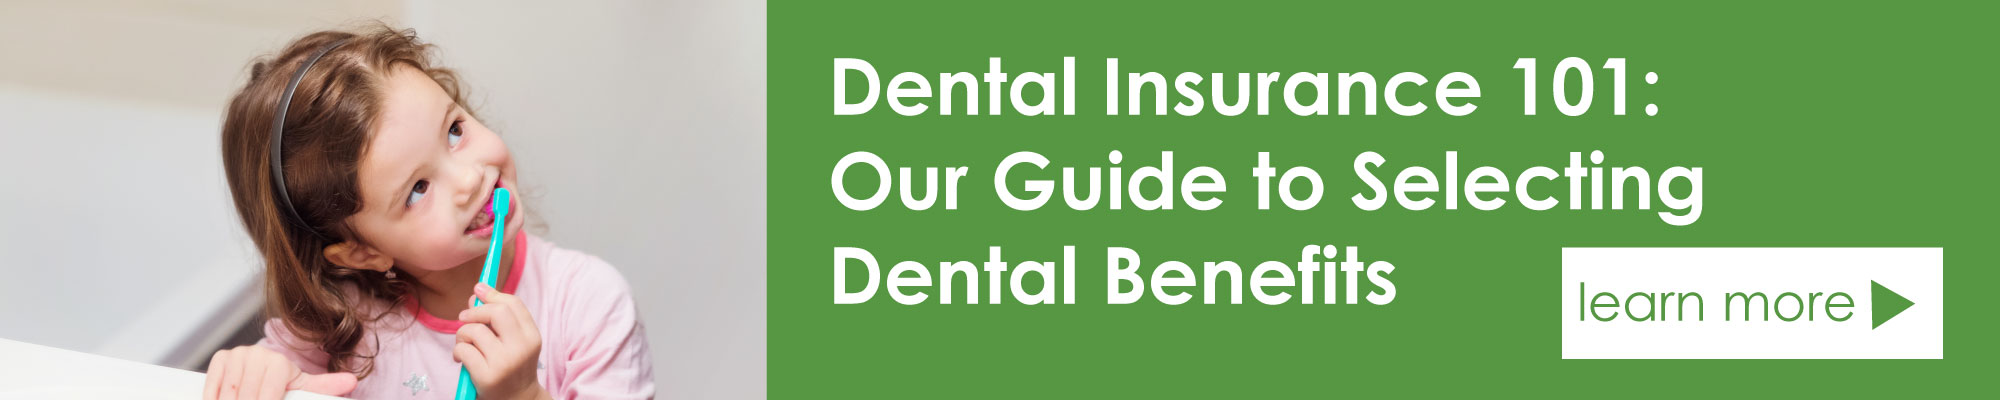 Dental Insurance 101: Our guide to selecting dental benefits